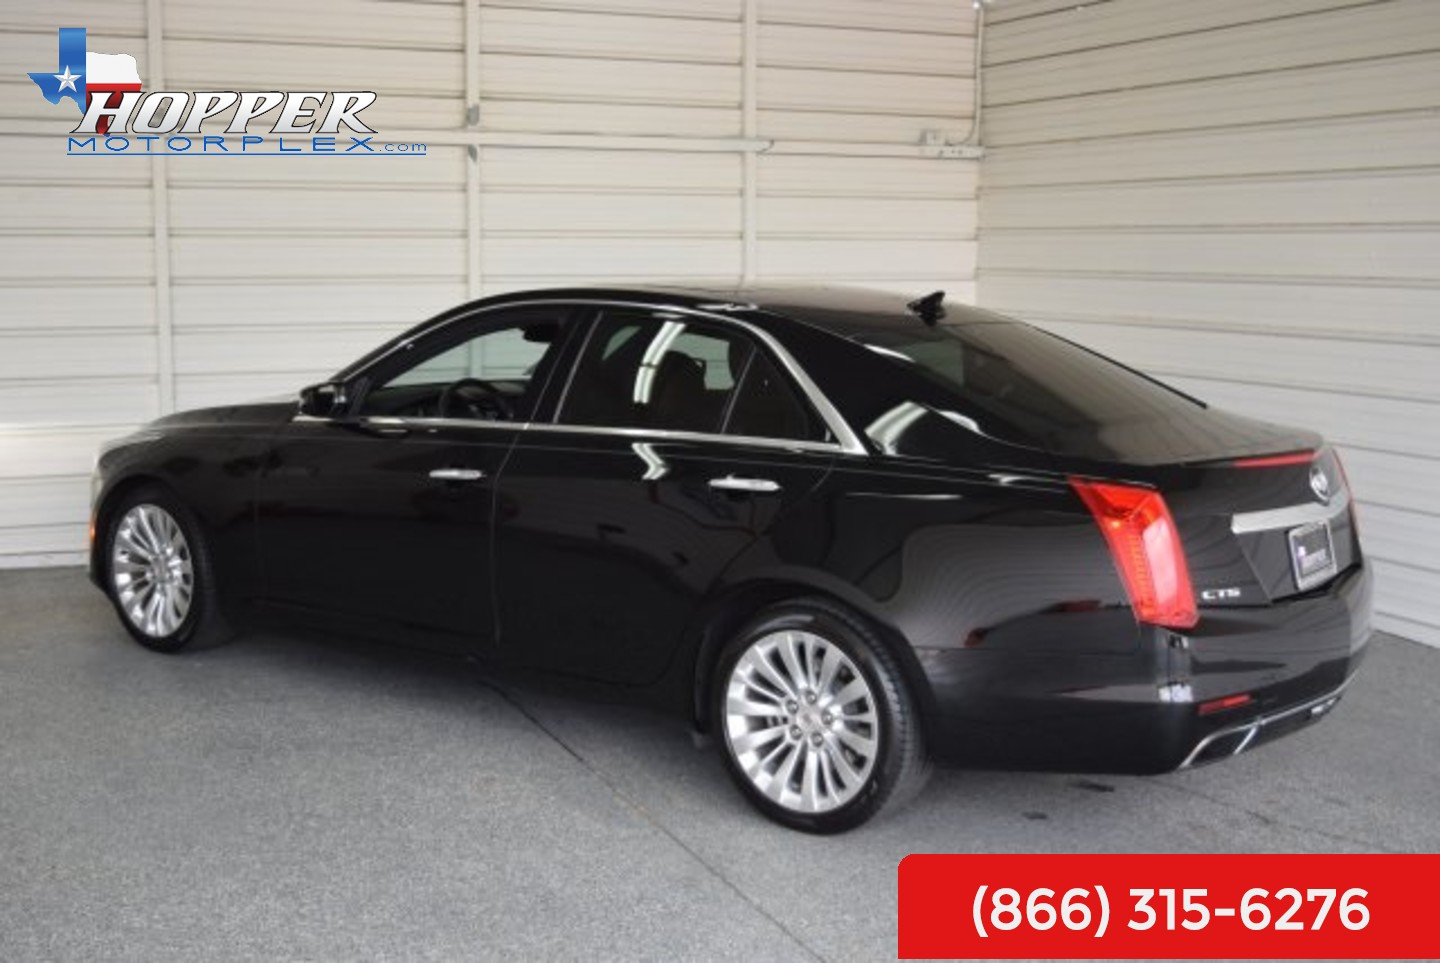 Used 2014 Cadillac Xts Pricing Features Edmunds